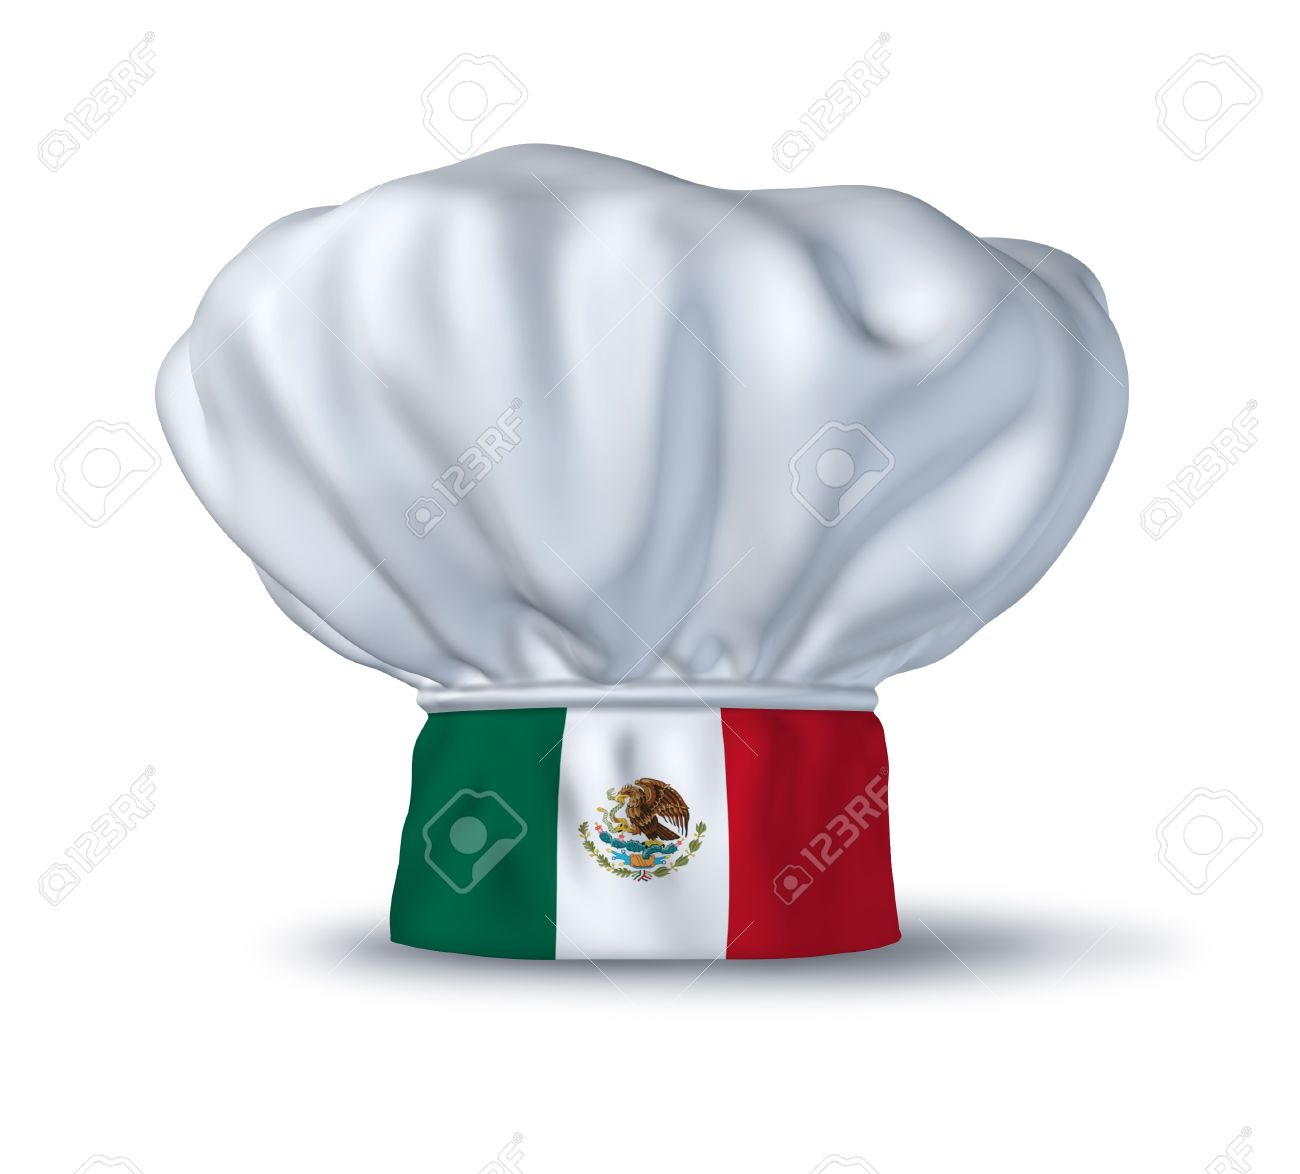 Mexican Food Symbol Represented By A Chef Hat With The Flag Of